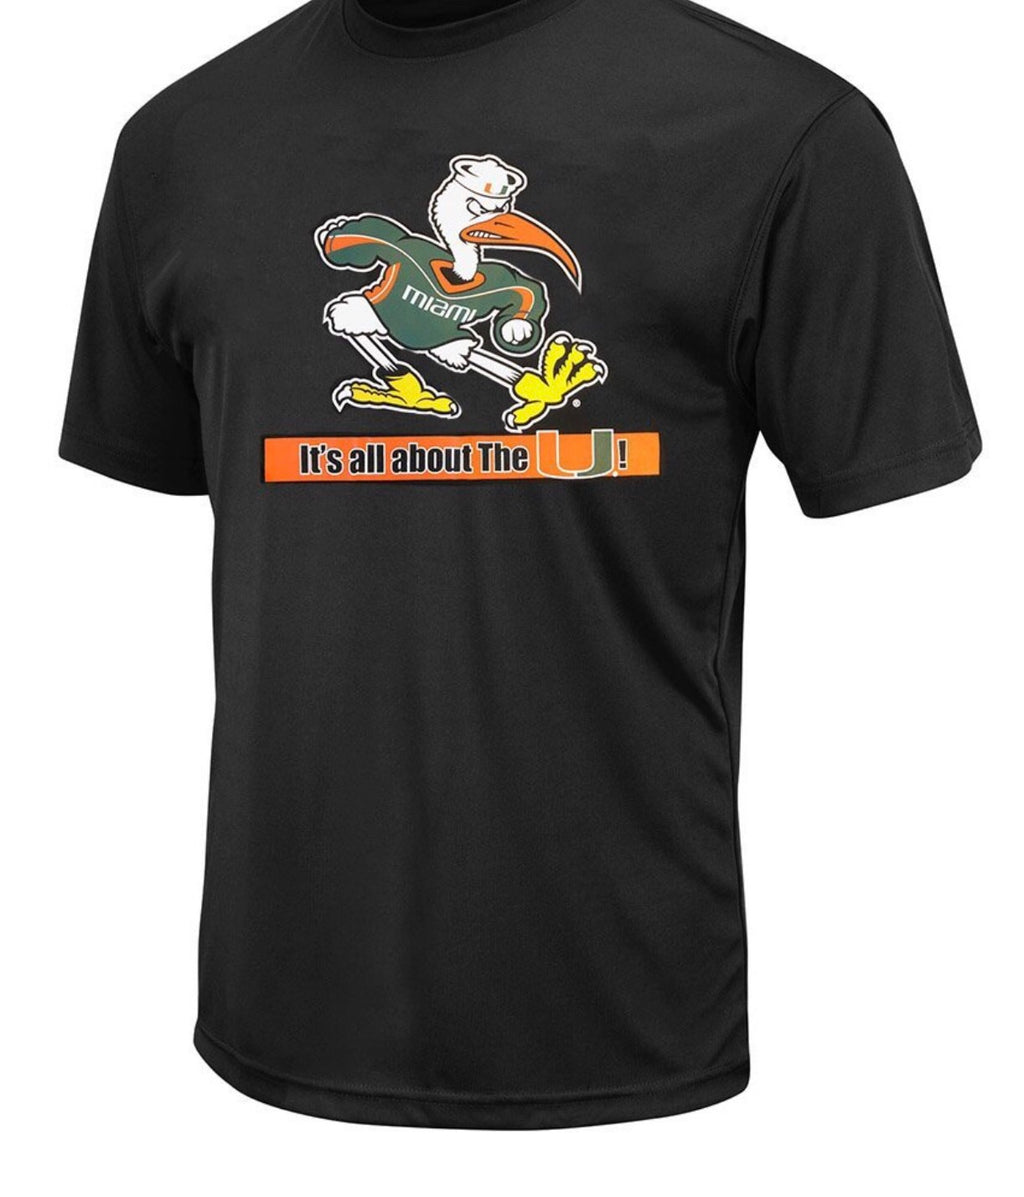 Miami Hurricanes Colosseum Youth Ibis It's All About The U Performance T-Shirt - Black